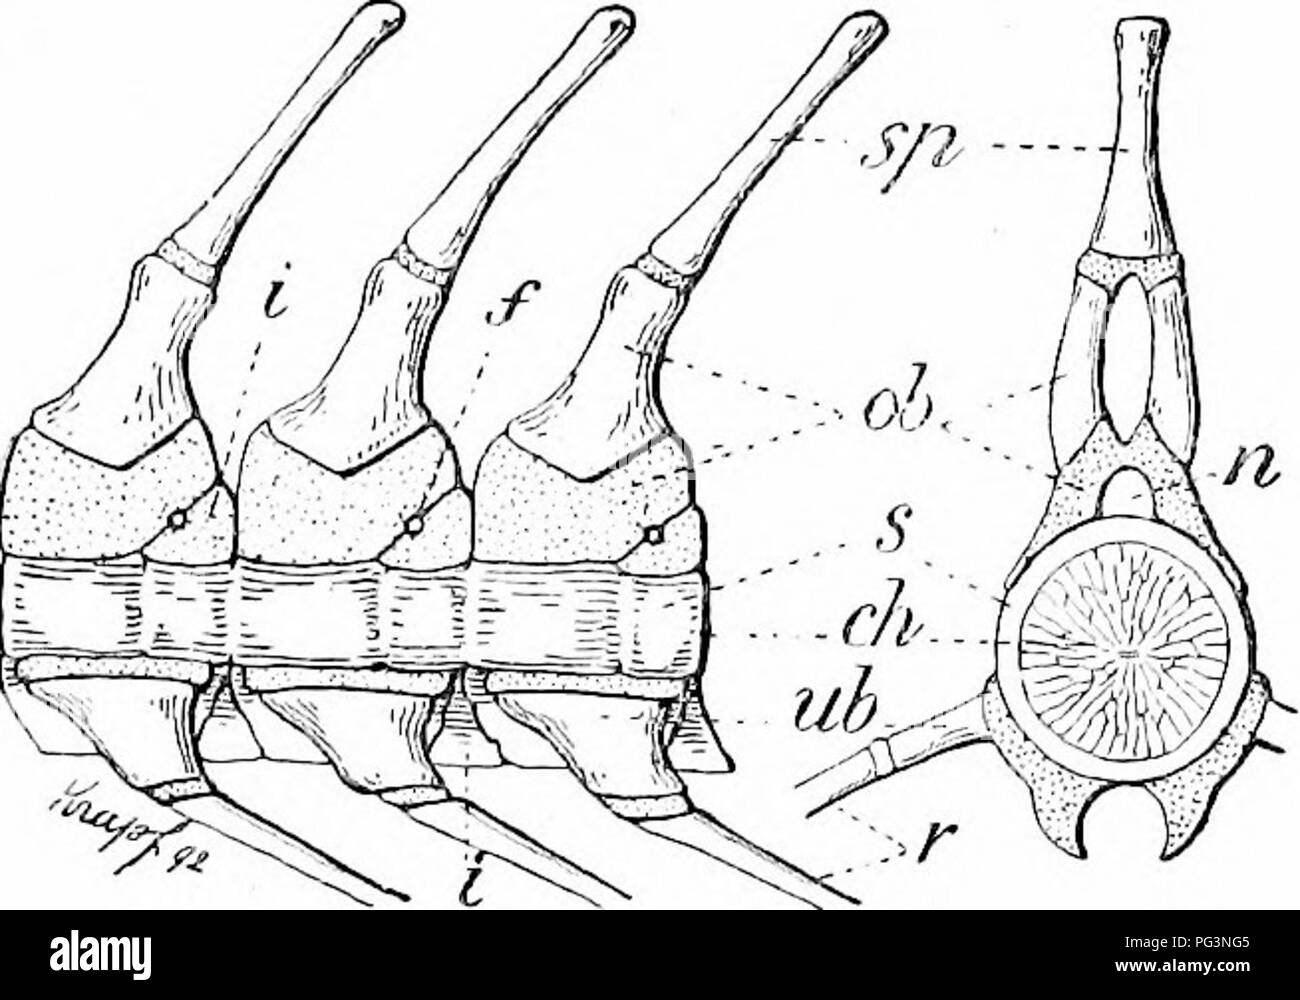 a manual of zoology zoology iv vertebrata 453 cyclostome and Hydra Anatomy Diagram iv vertebrata 453 cyclostome and lower figs 511 512 or neural and immal arches these consist of paired parts in the skeletogenous layer which abut